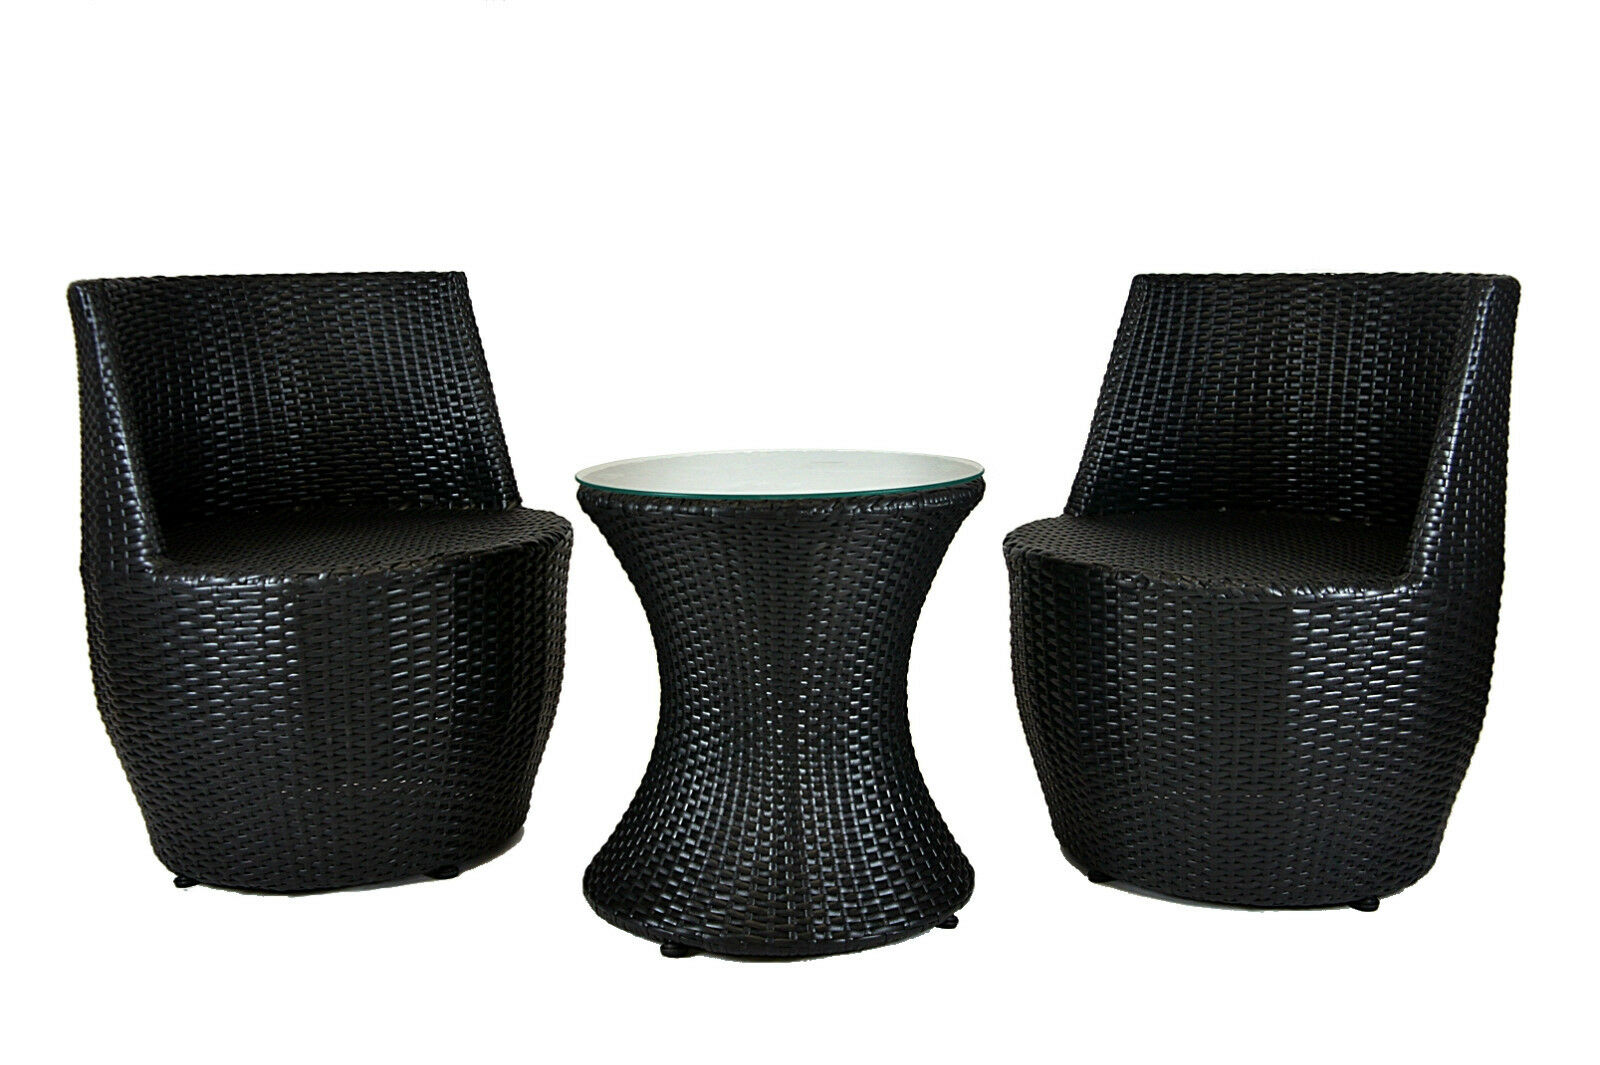 gartenm bel set poly rattan vase lounge balkonset. Black Bedroom Furniture Sets. Home Design Ideas